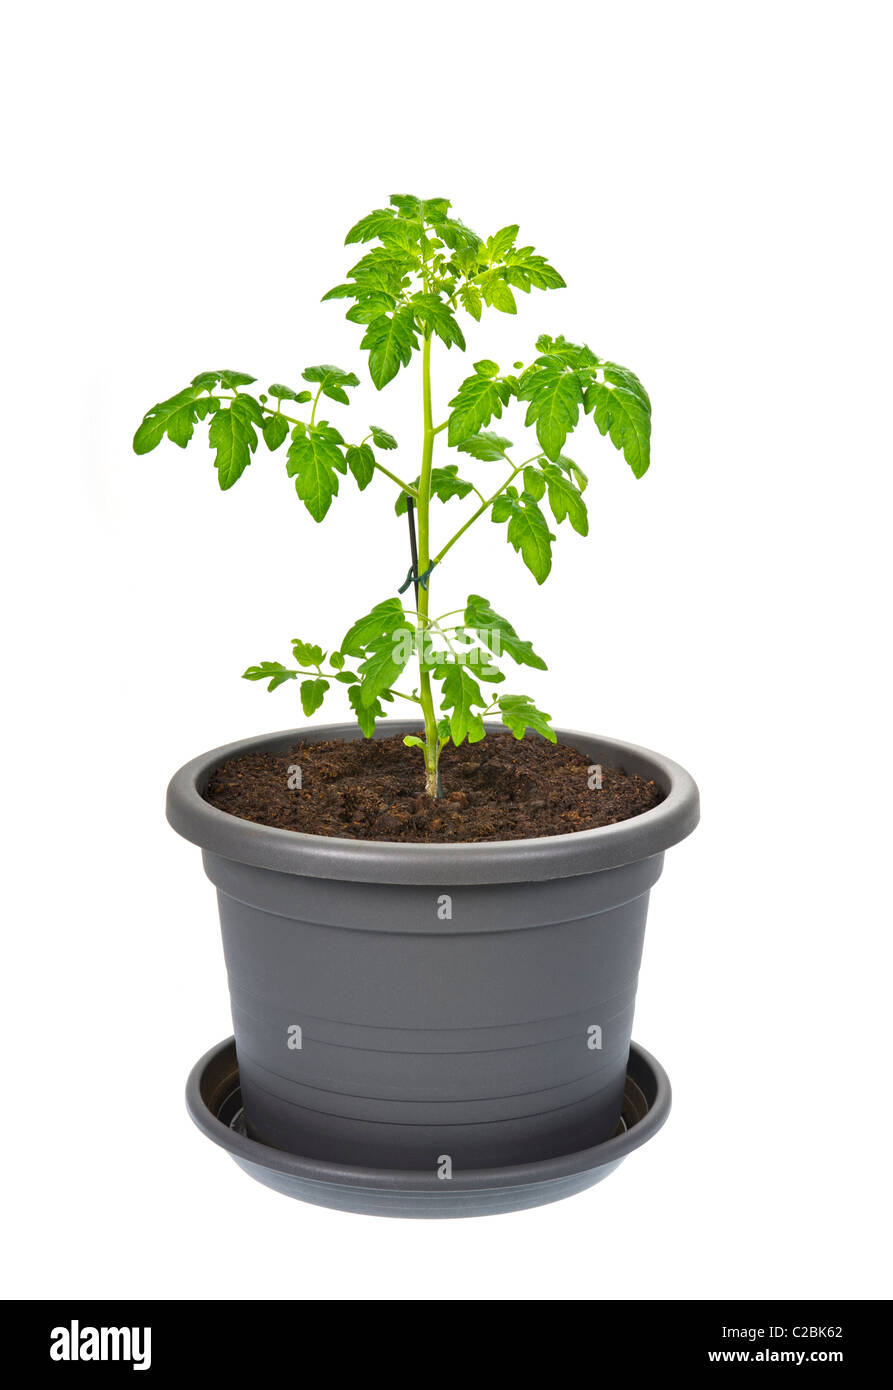 tomato plant flowerpot flower pot plastic container earth soil grow growing green ecologically ecological eco clay - Stock Image